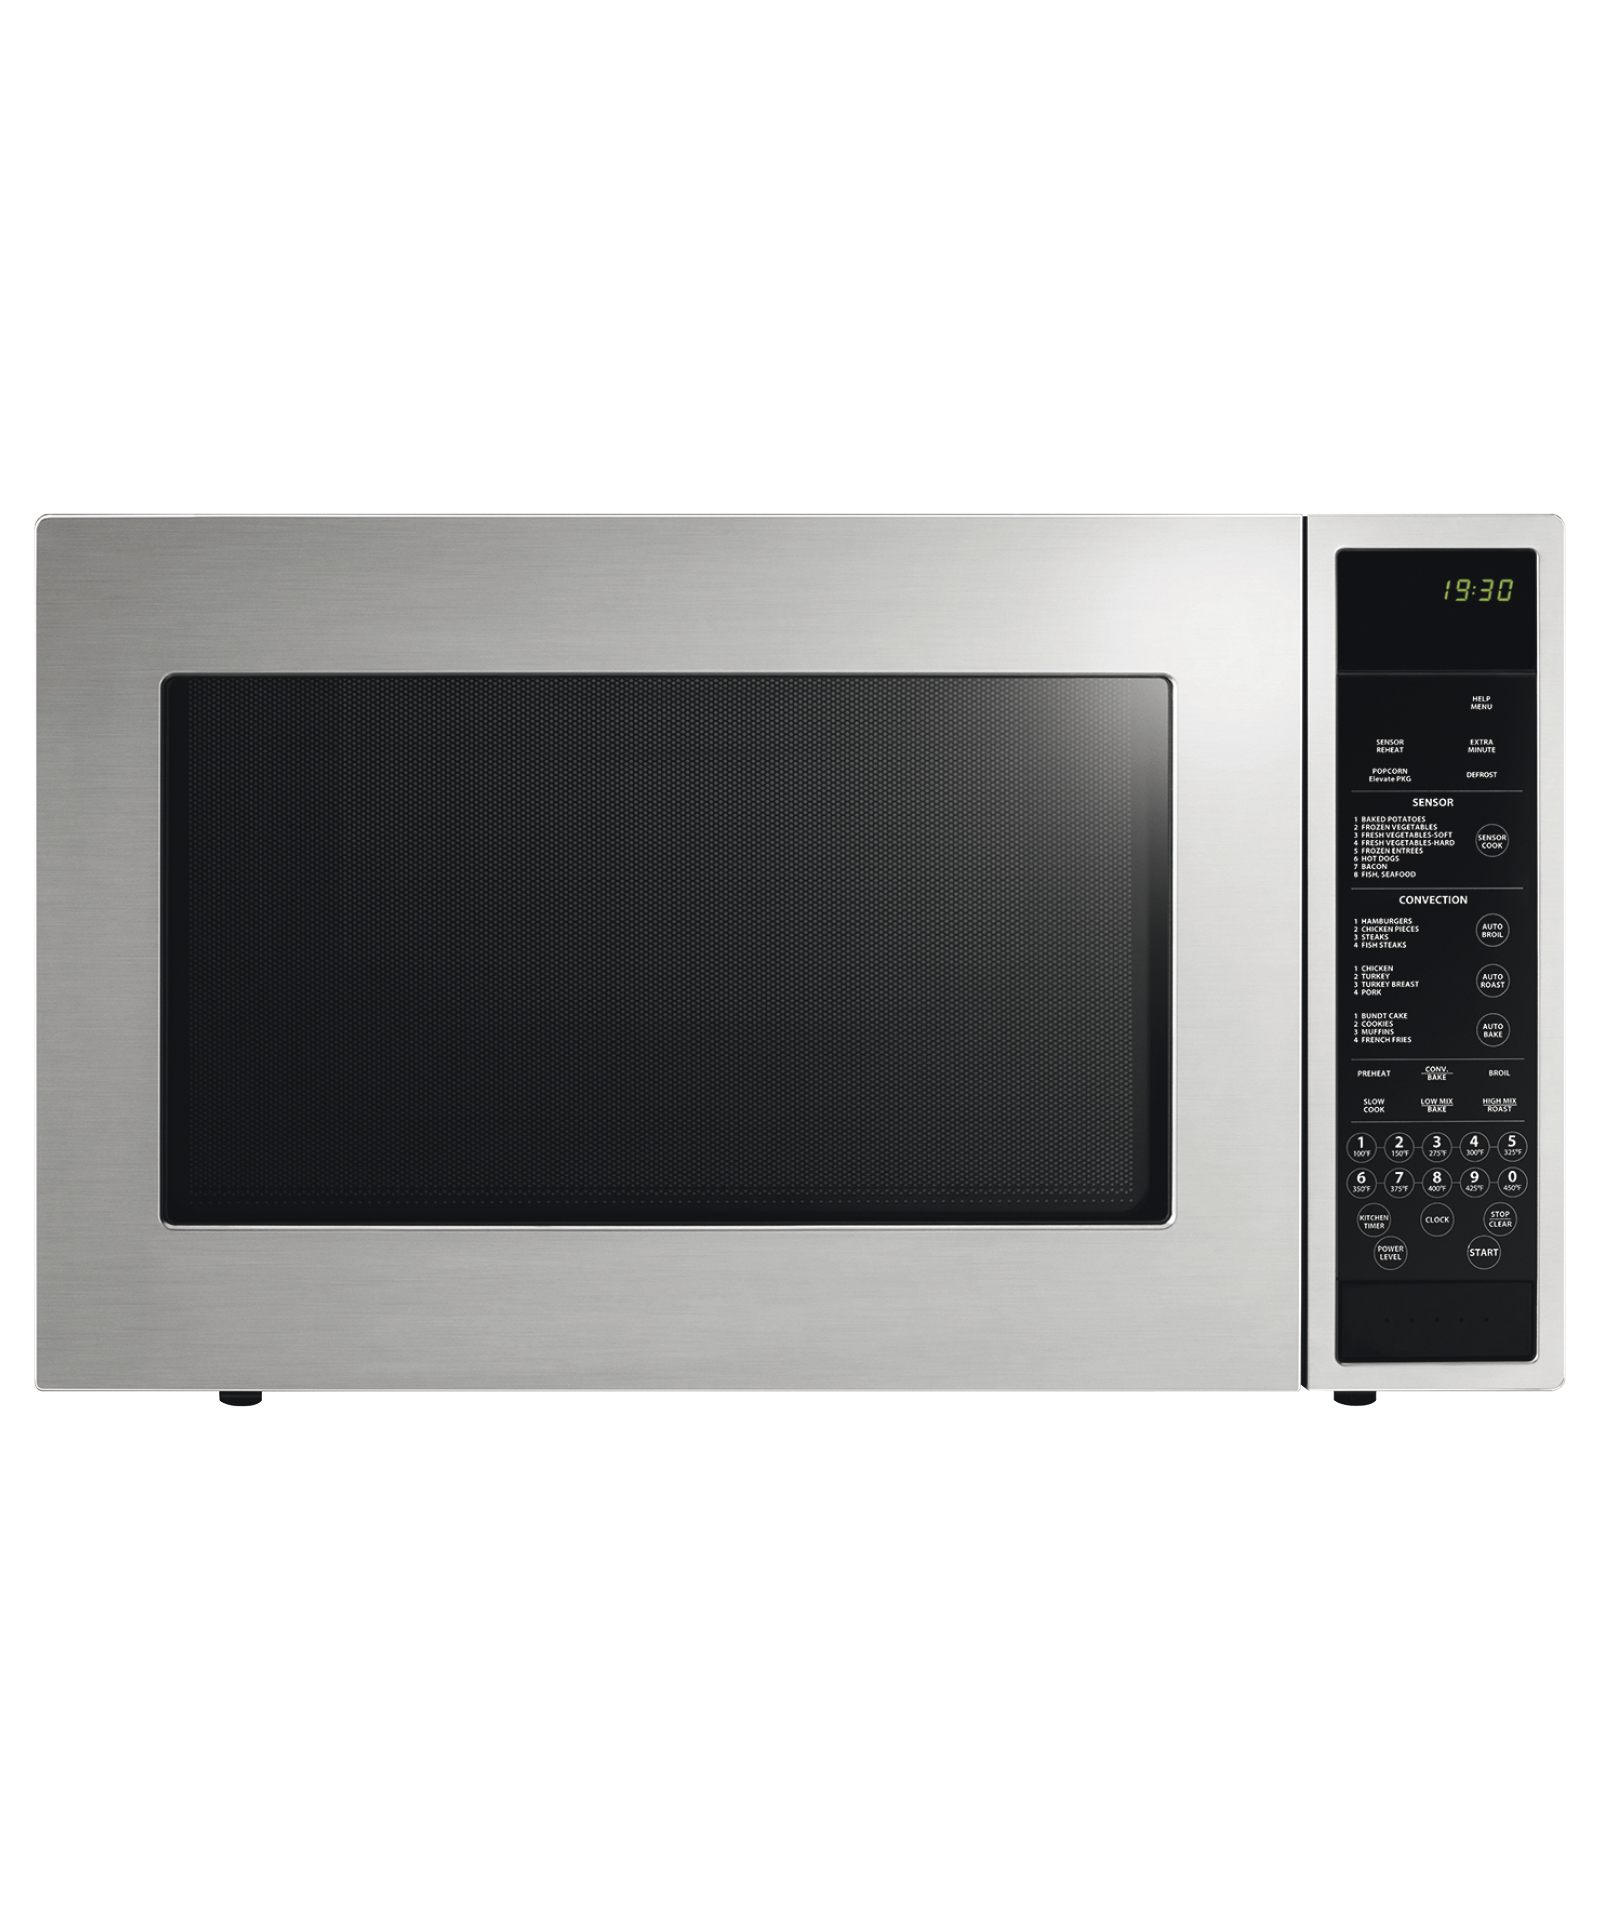 built range ft of countertop trend style lg and oven microwave uncategorized xfile convection the in appealing picture over ge cu countertops combo with